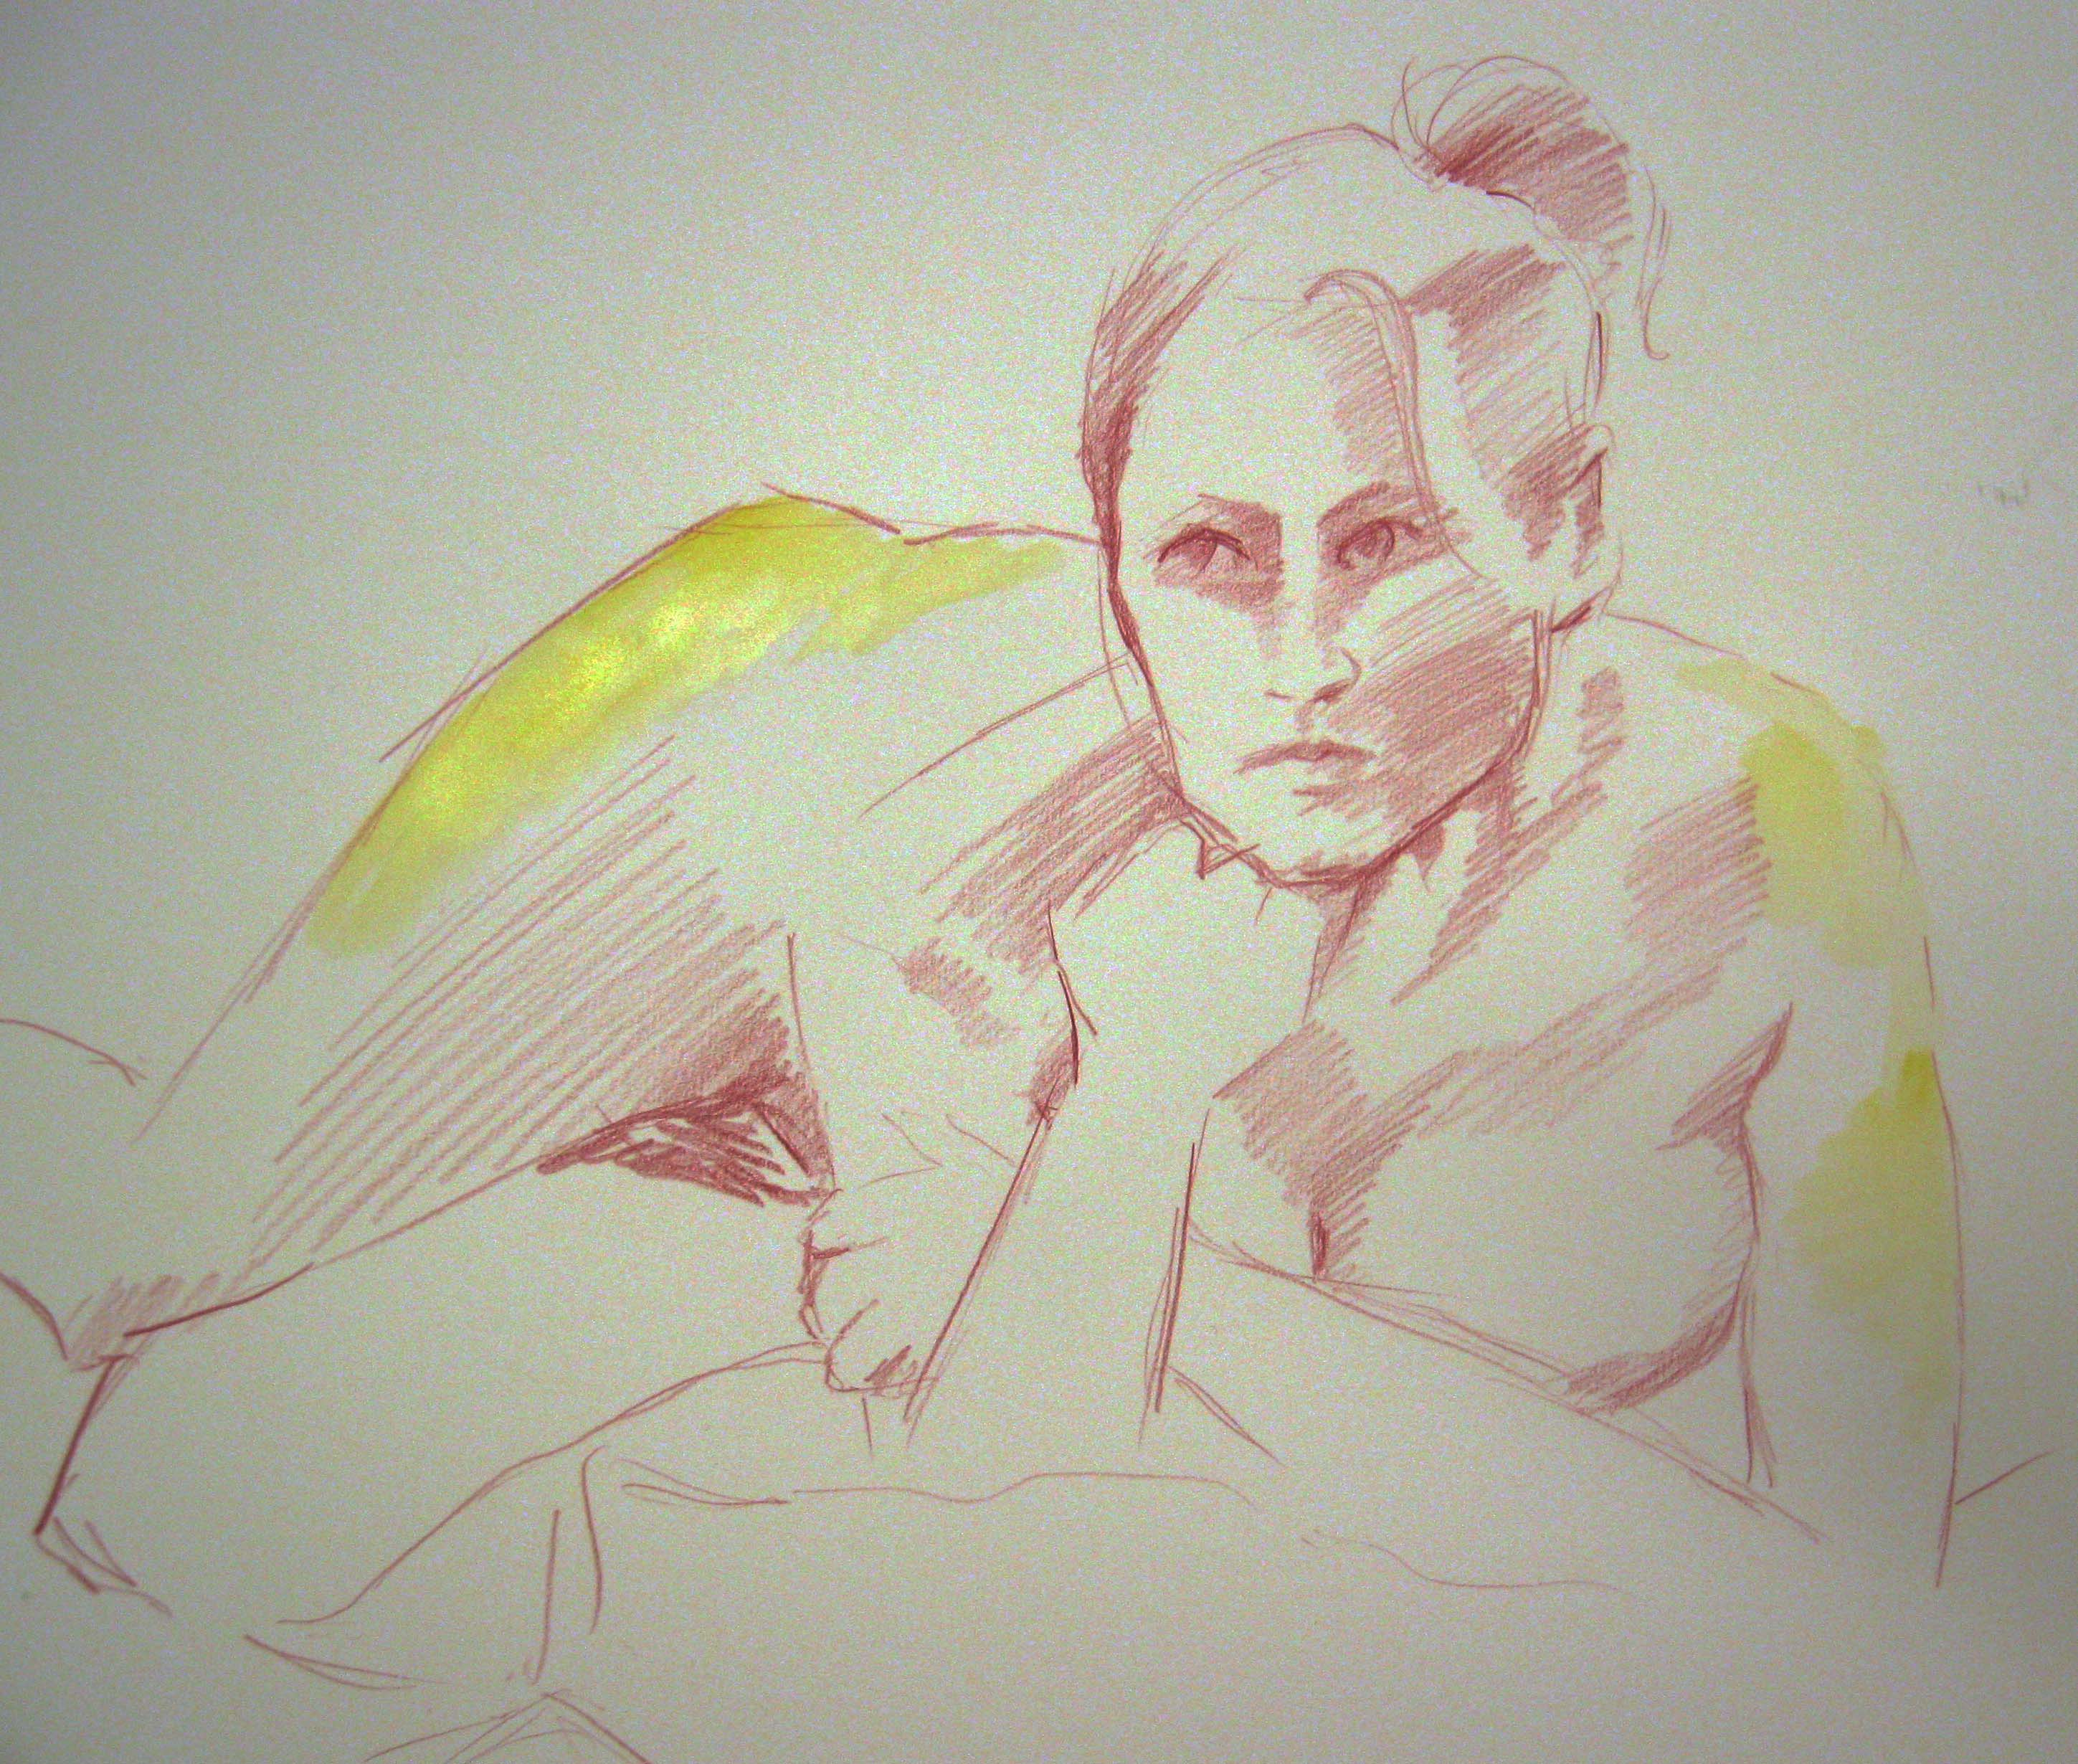 life drawing class, near me, merseyside, southport. Study of a female figure done in the life class, using coloured pencils